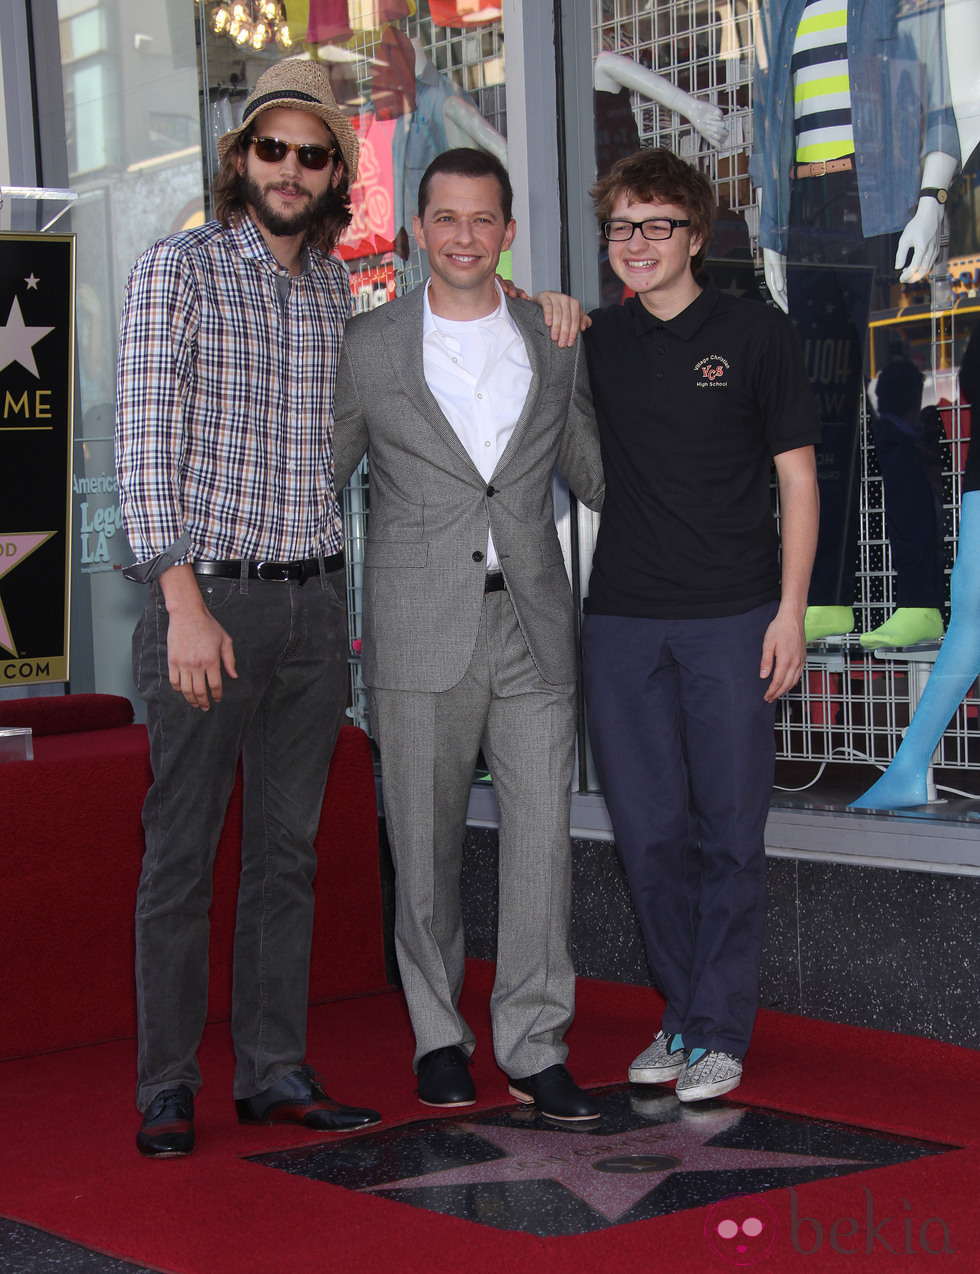 Ashton Kutcher, Jon Cryer, and Angus T. Jones